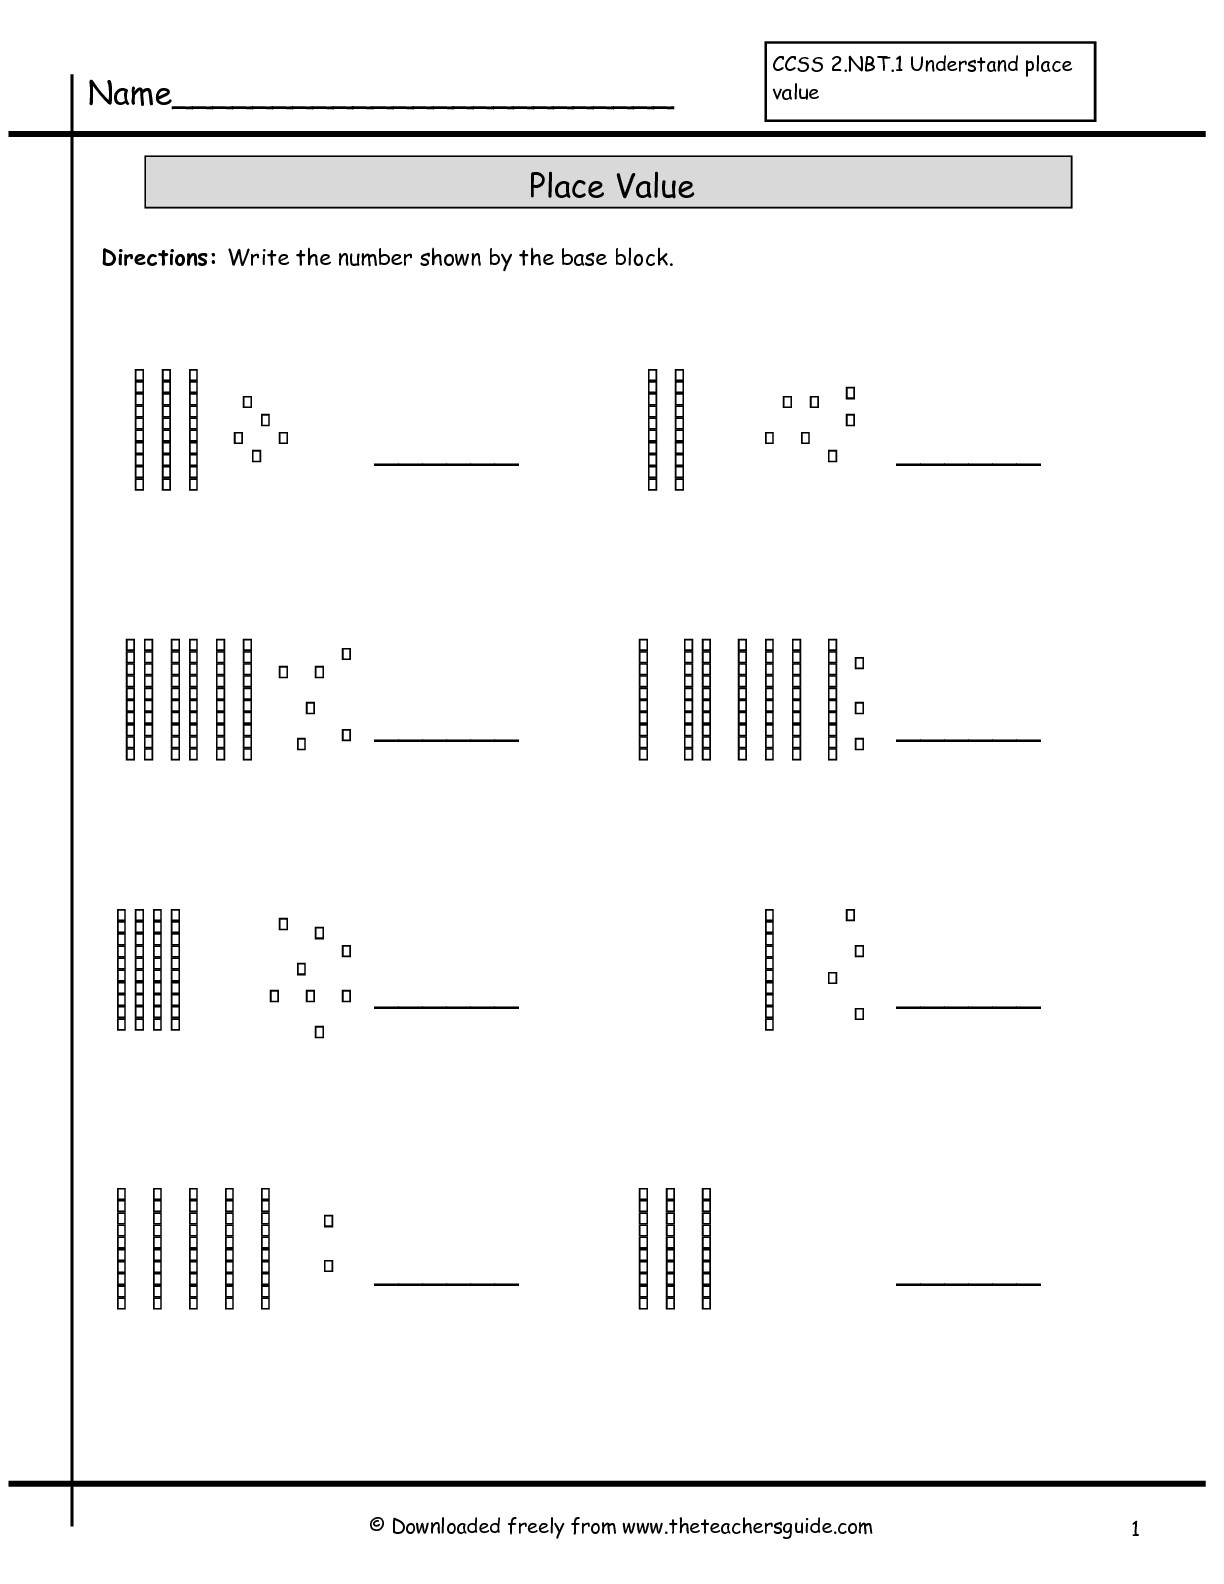 Place Value Worksheets From The Teacher's Guide - Free Printable | Free Printable Base Ten Block Worksheets